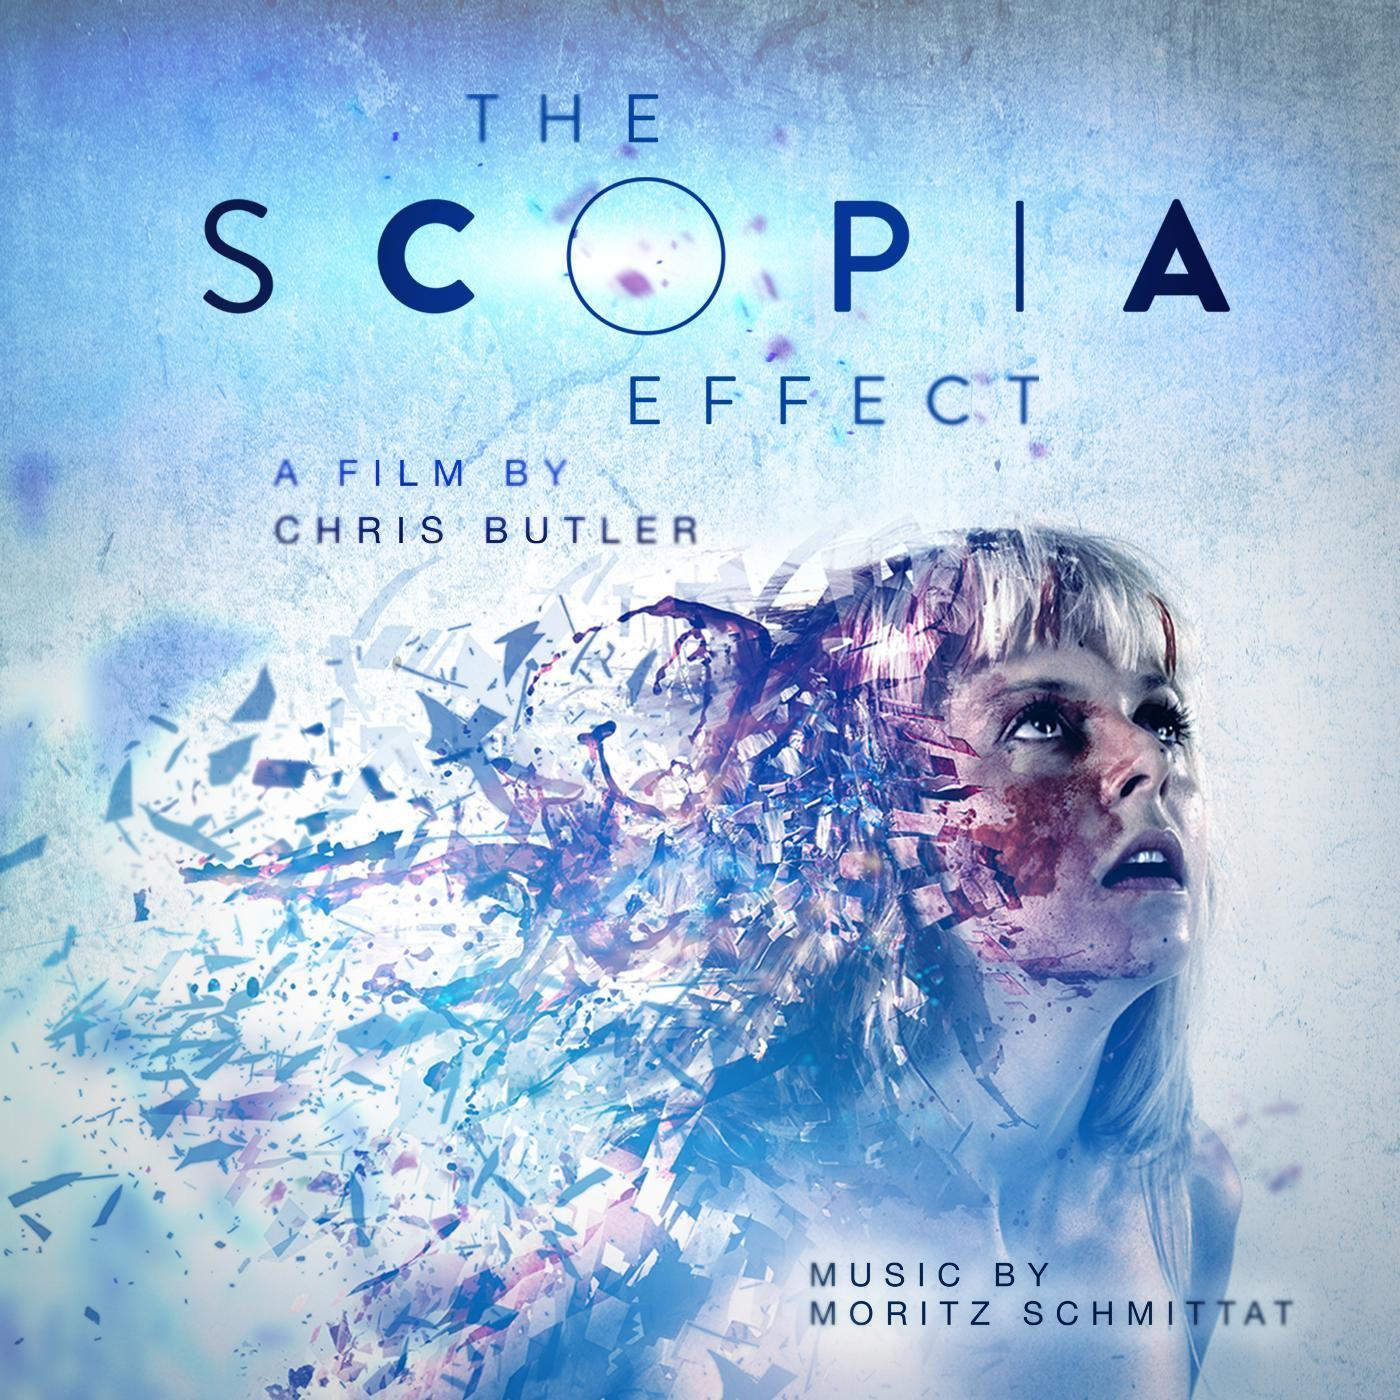 RT @FilmMusicSite: Big Eye Music has released a soundtrack for 'The Scopia Effect' composed by Moritz Schmittat http://t.co/FC5eNRvhpE http…